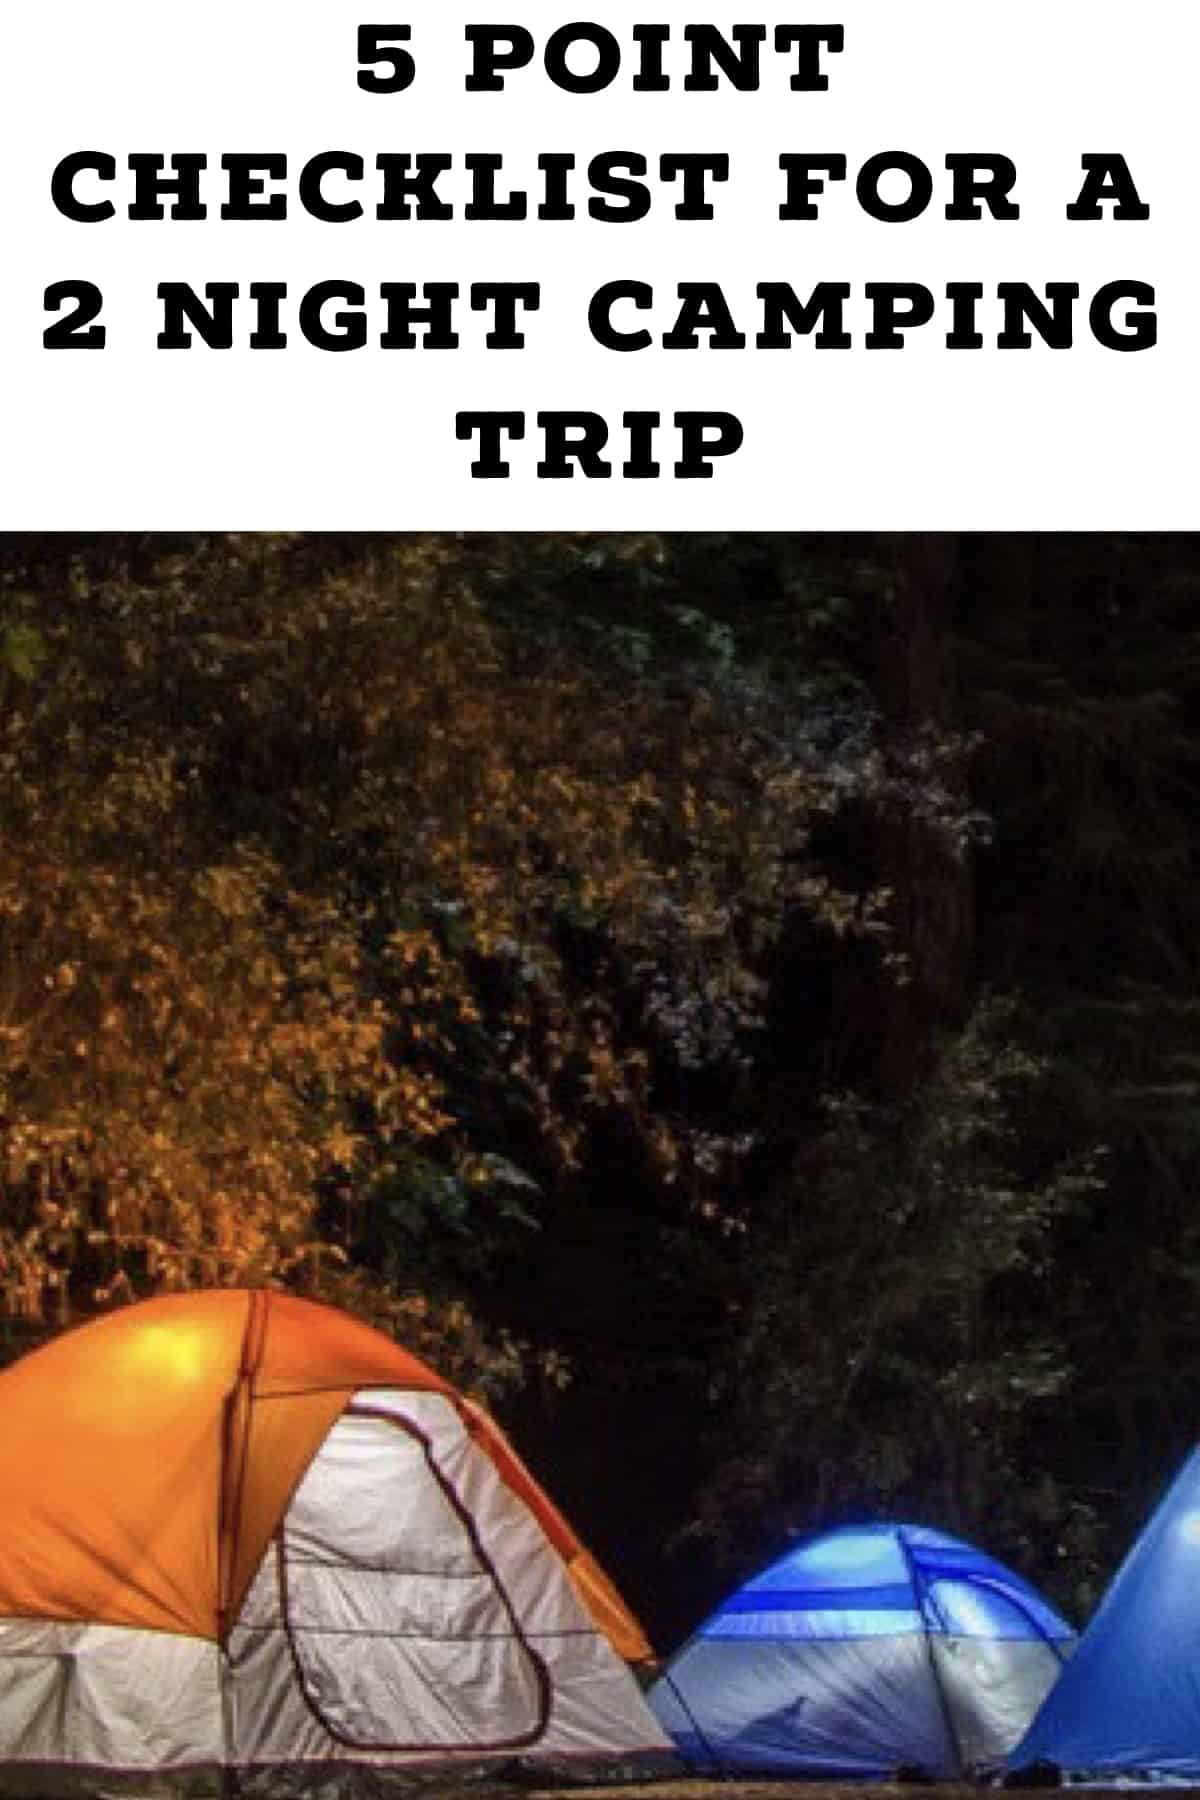 Pinterest image for 5 Point Checklist For A 2 Night Camping Trip